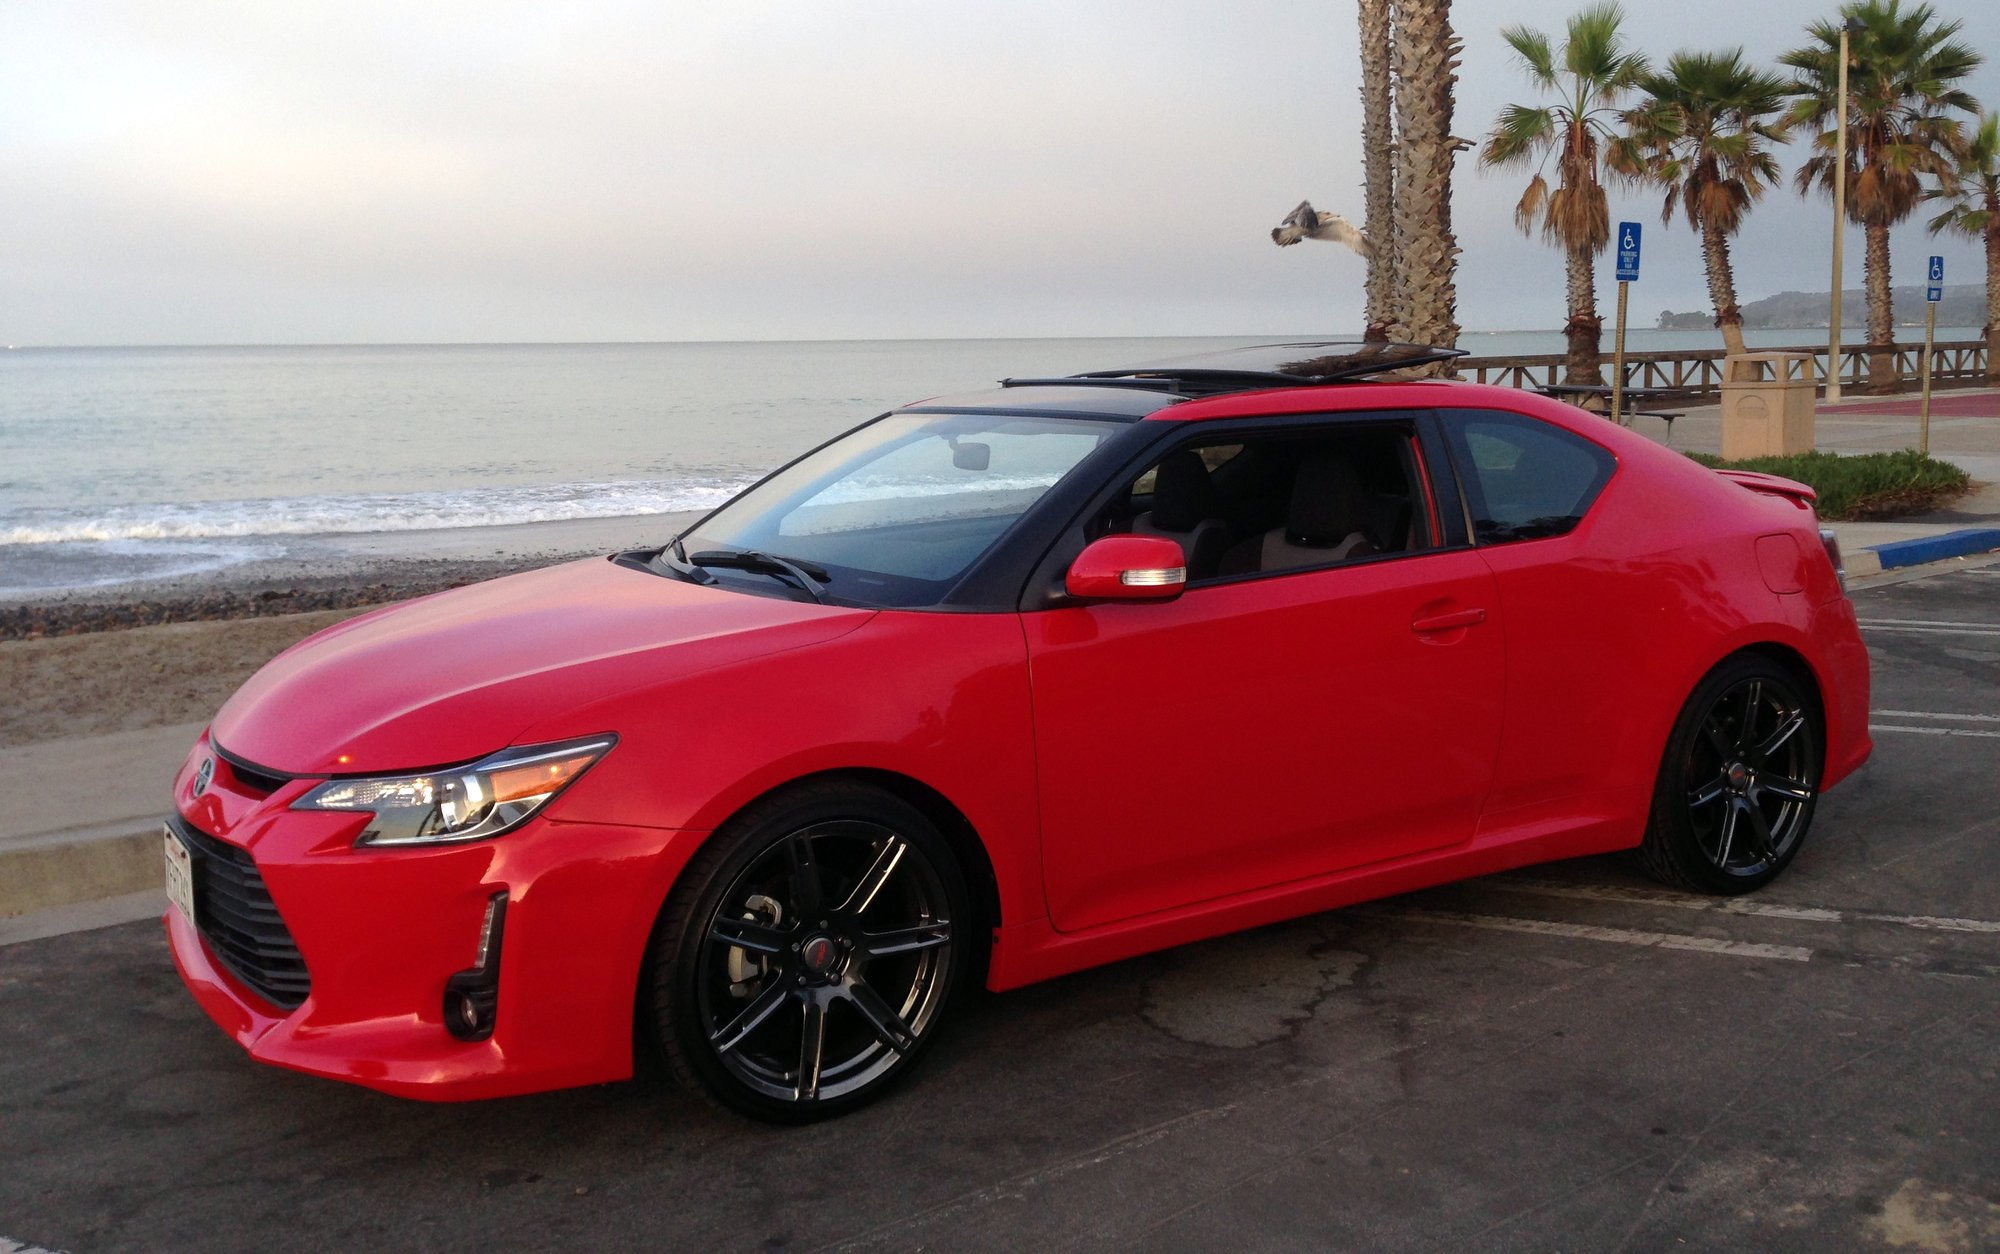 Scion Tc 0 60 >> Road Test: 2015 Scion tC | Clean Fleet Report